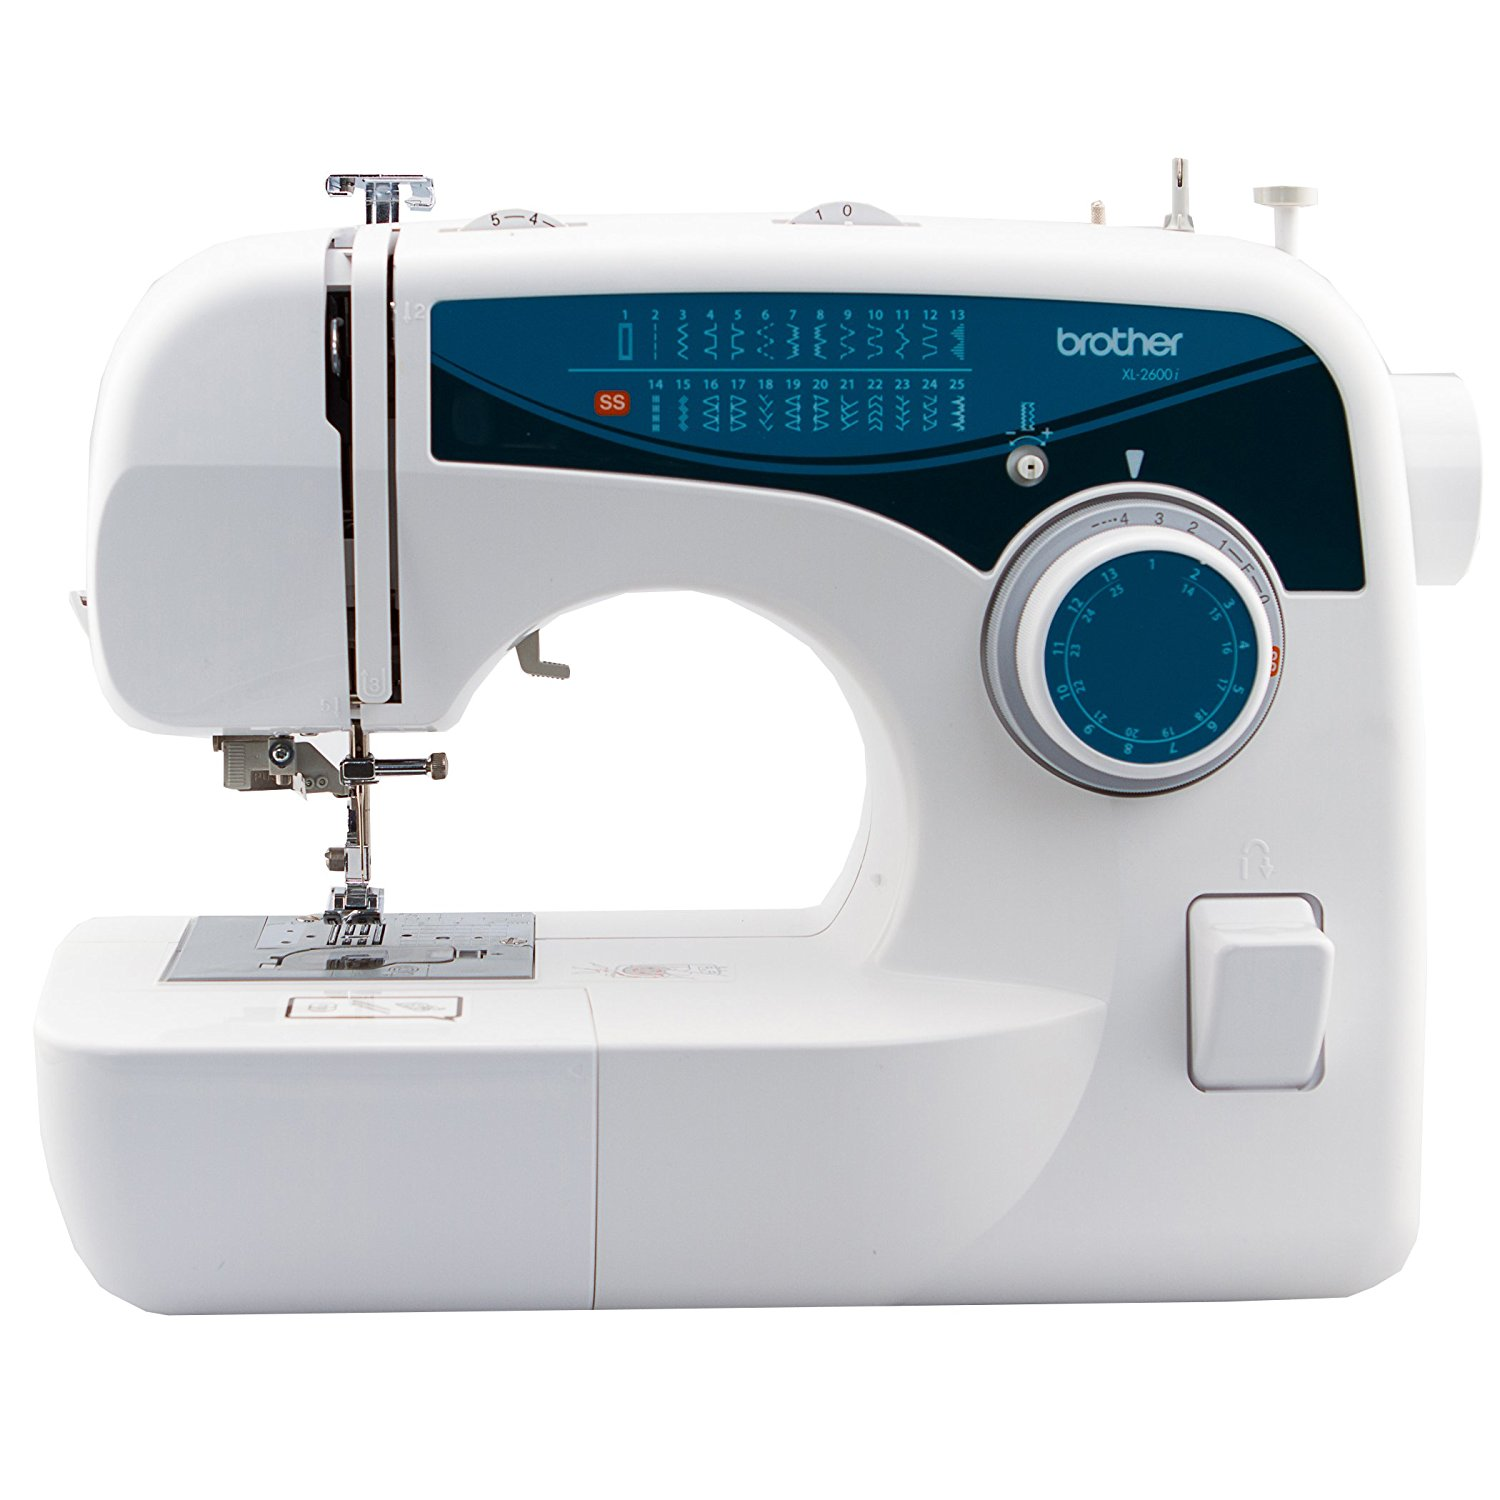 Brother XL2600I Review – Perfect Beginner Sewing Machine